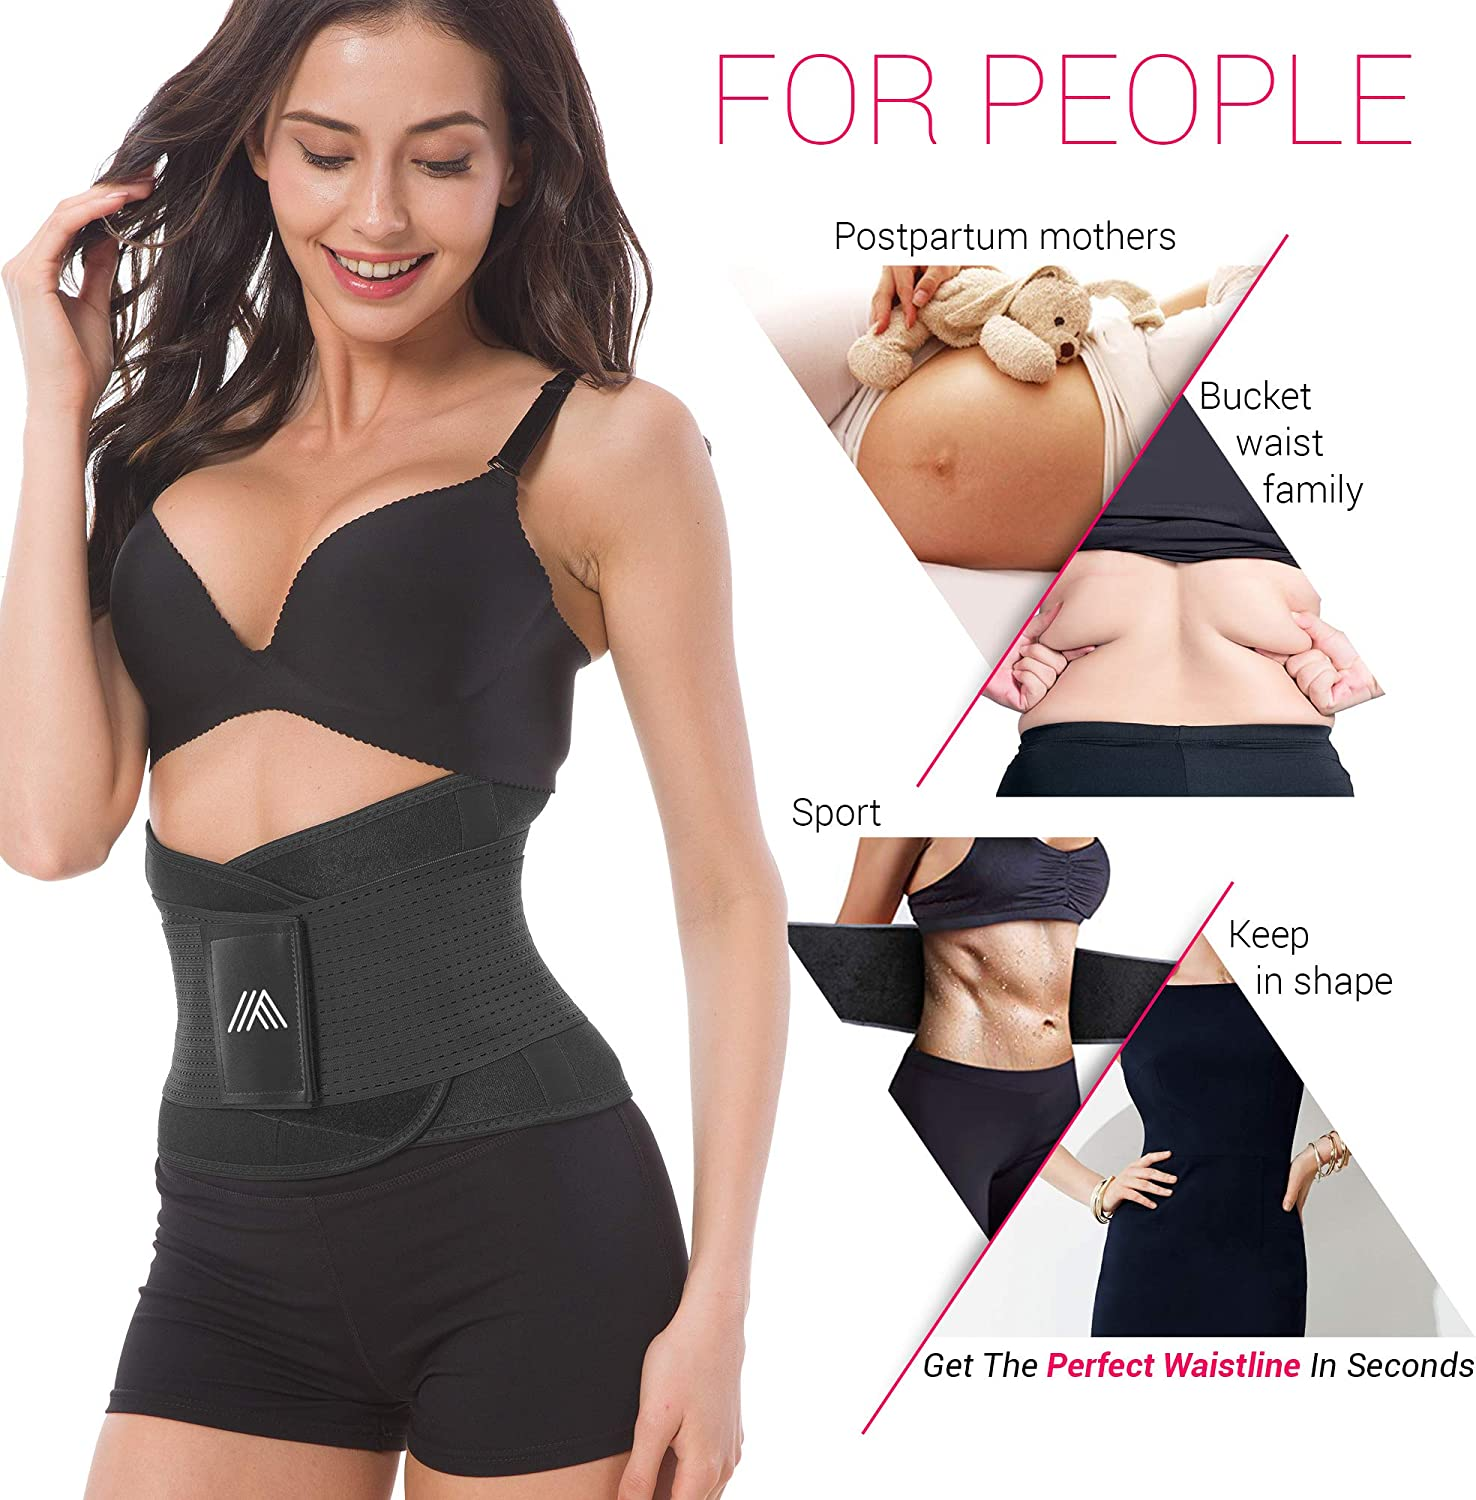 Adjustable Back Support Belt for Women – Abdominal Elastic Waist Ab Cincher Trainer Trimmer – Neoprene Hourglass Slimming Body Shaper Sport Girdle for Weight Loss Sweet Sweat Compression Band Workout